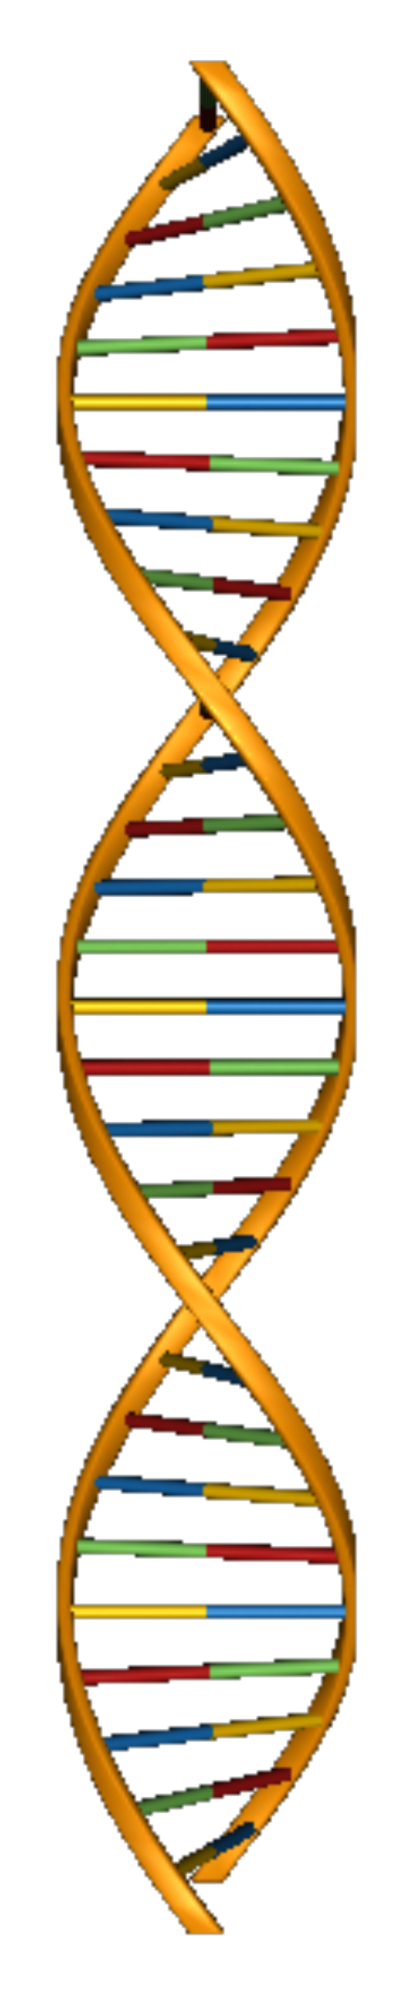 Dna structure png. Smart exchange usa search